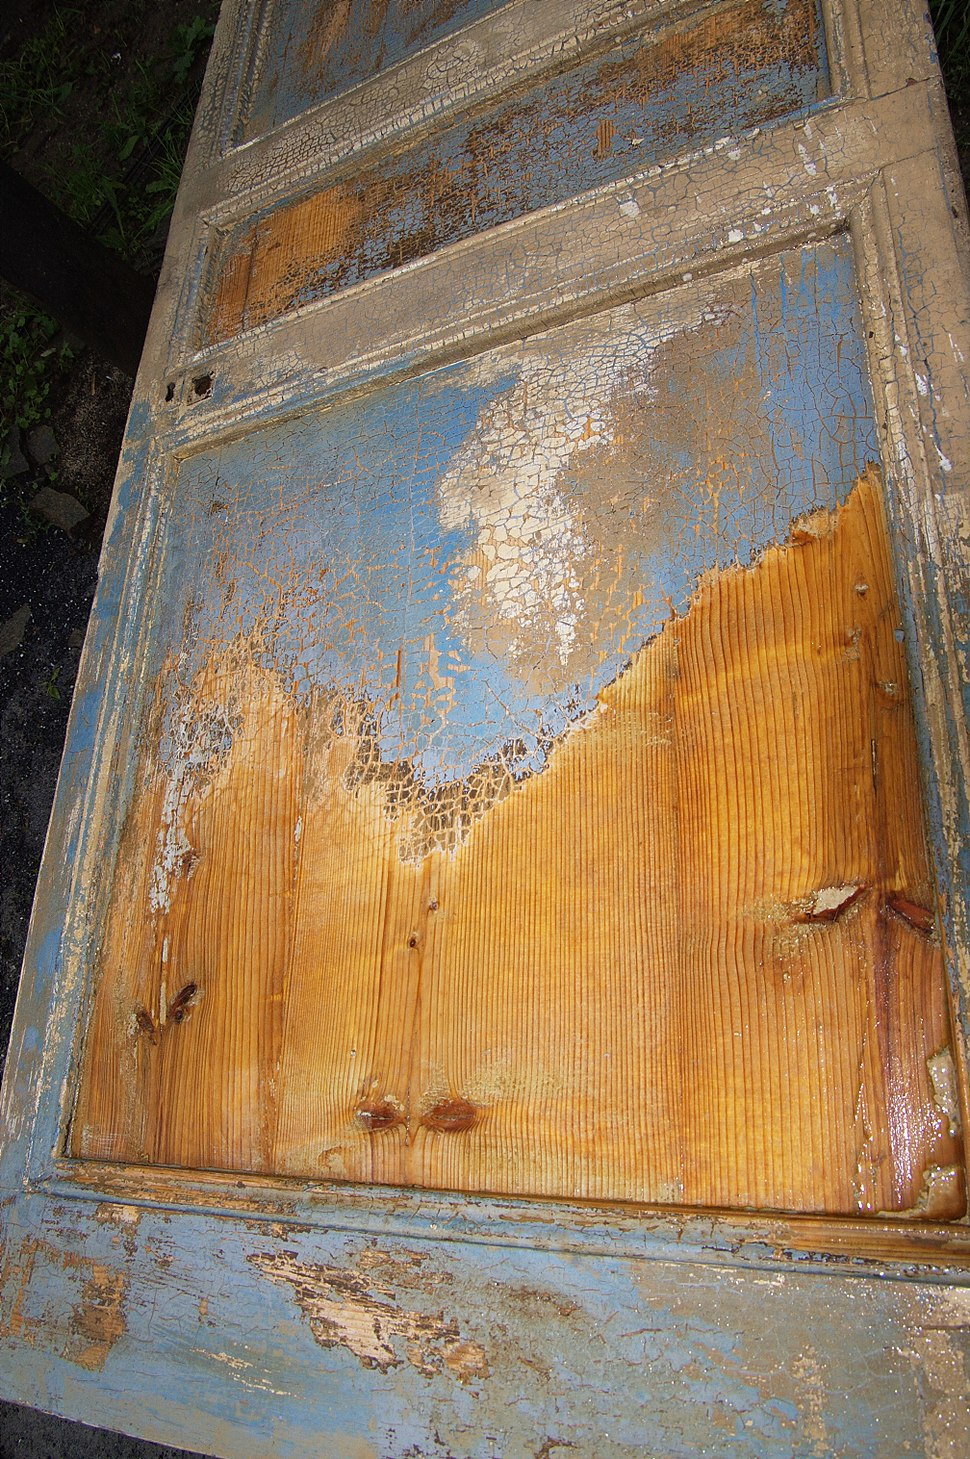 Paint stripping with caustic soda